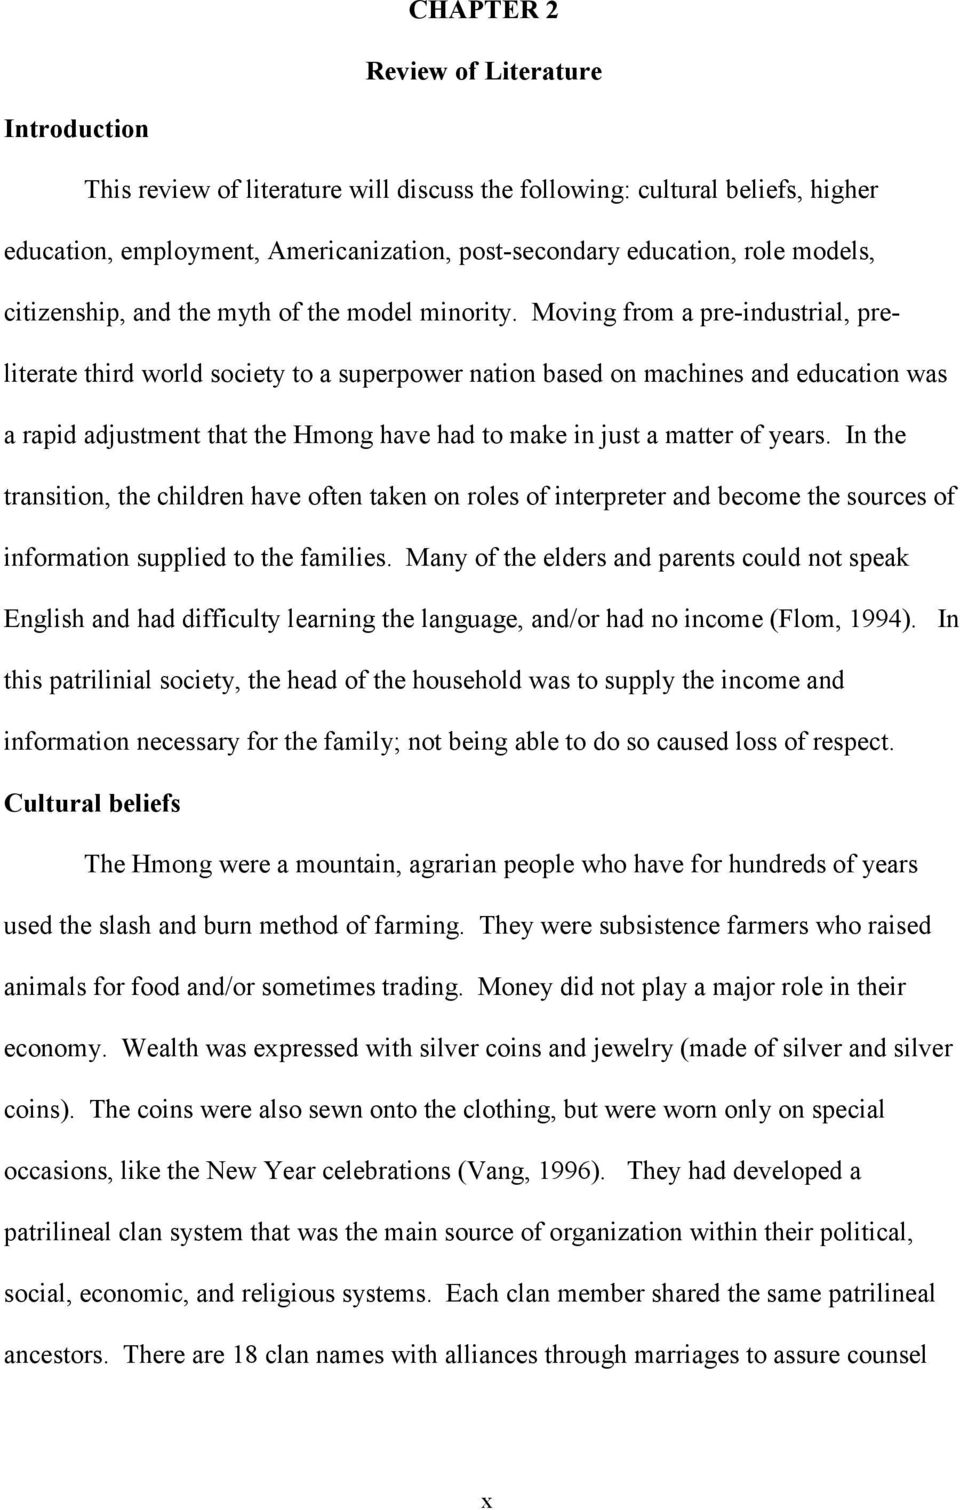 Moving from a pre-industrial, preliterate third world society to a superpower nation based on machines and education was a rapid adjustment that the Hmong have had to make in just a matter of years.